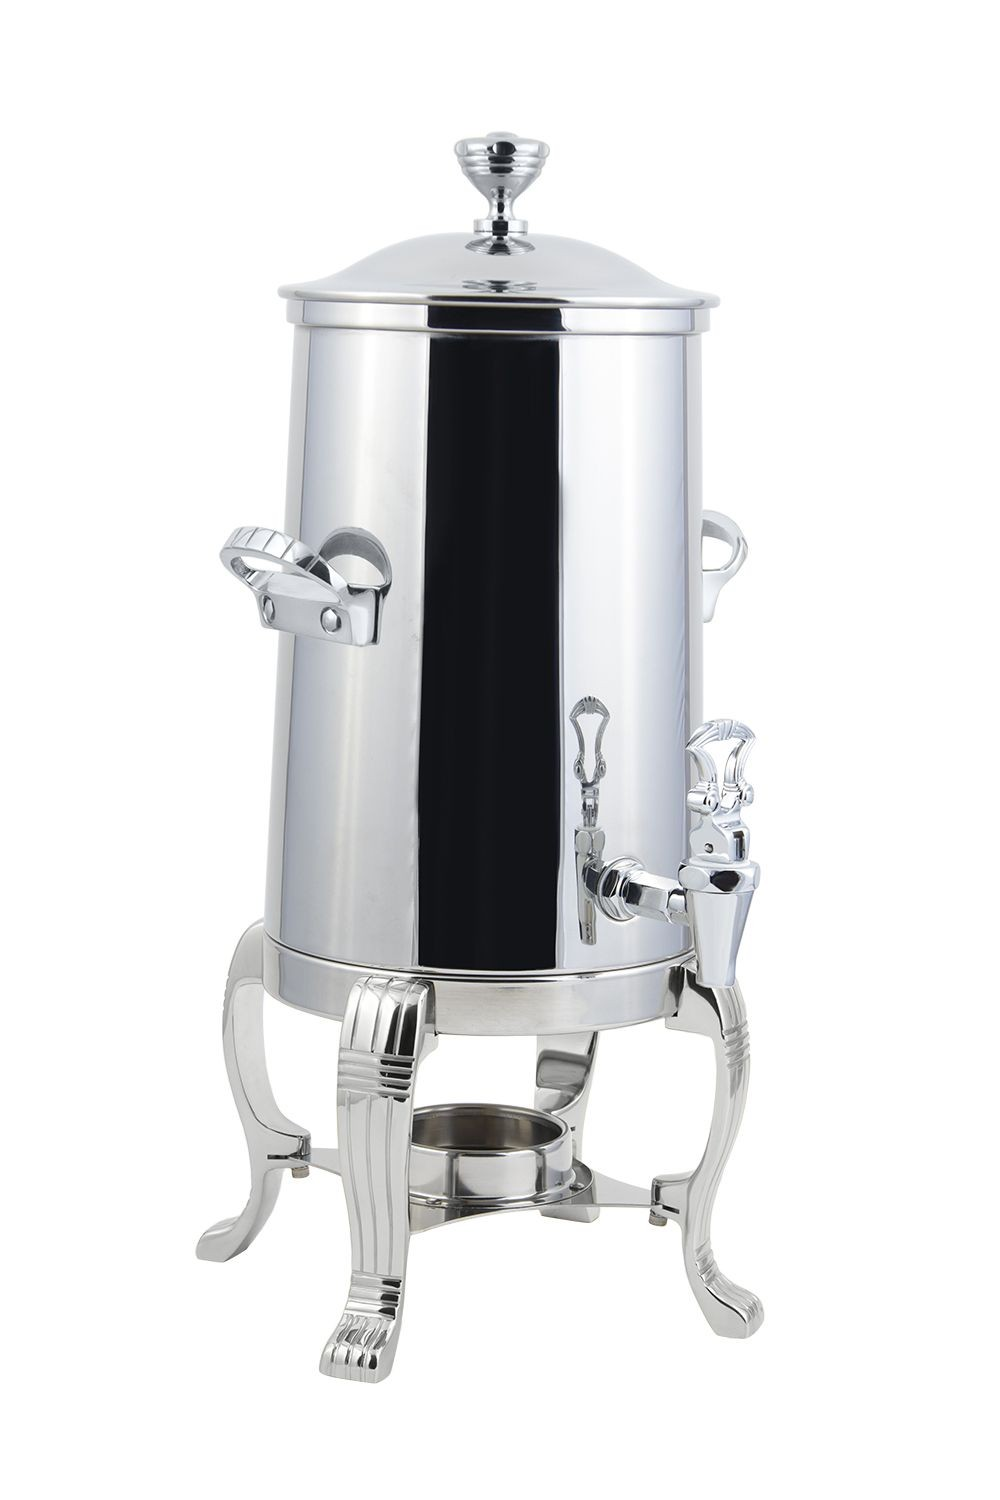 Bon Chef 41003C Aurora Single Wall Non-Insulated Coffee Urn with Chrome Trim, 3 1/2 Gallon